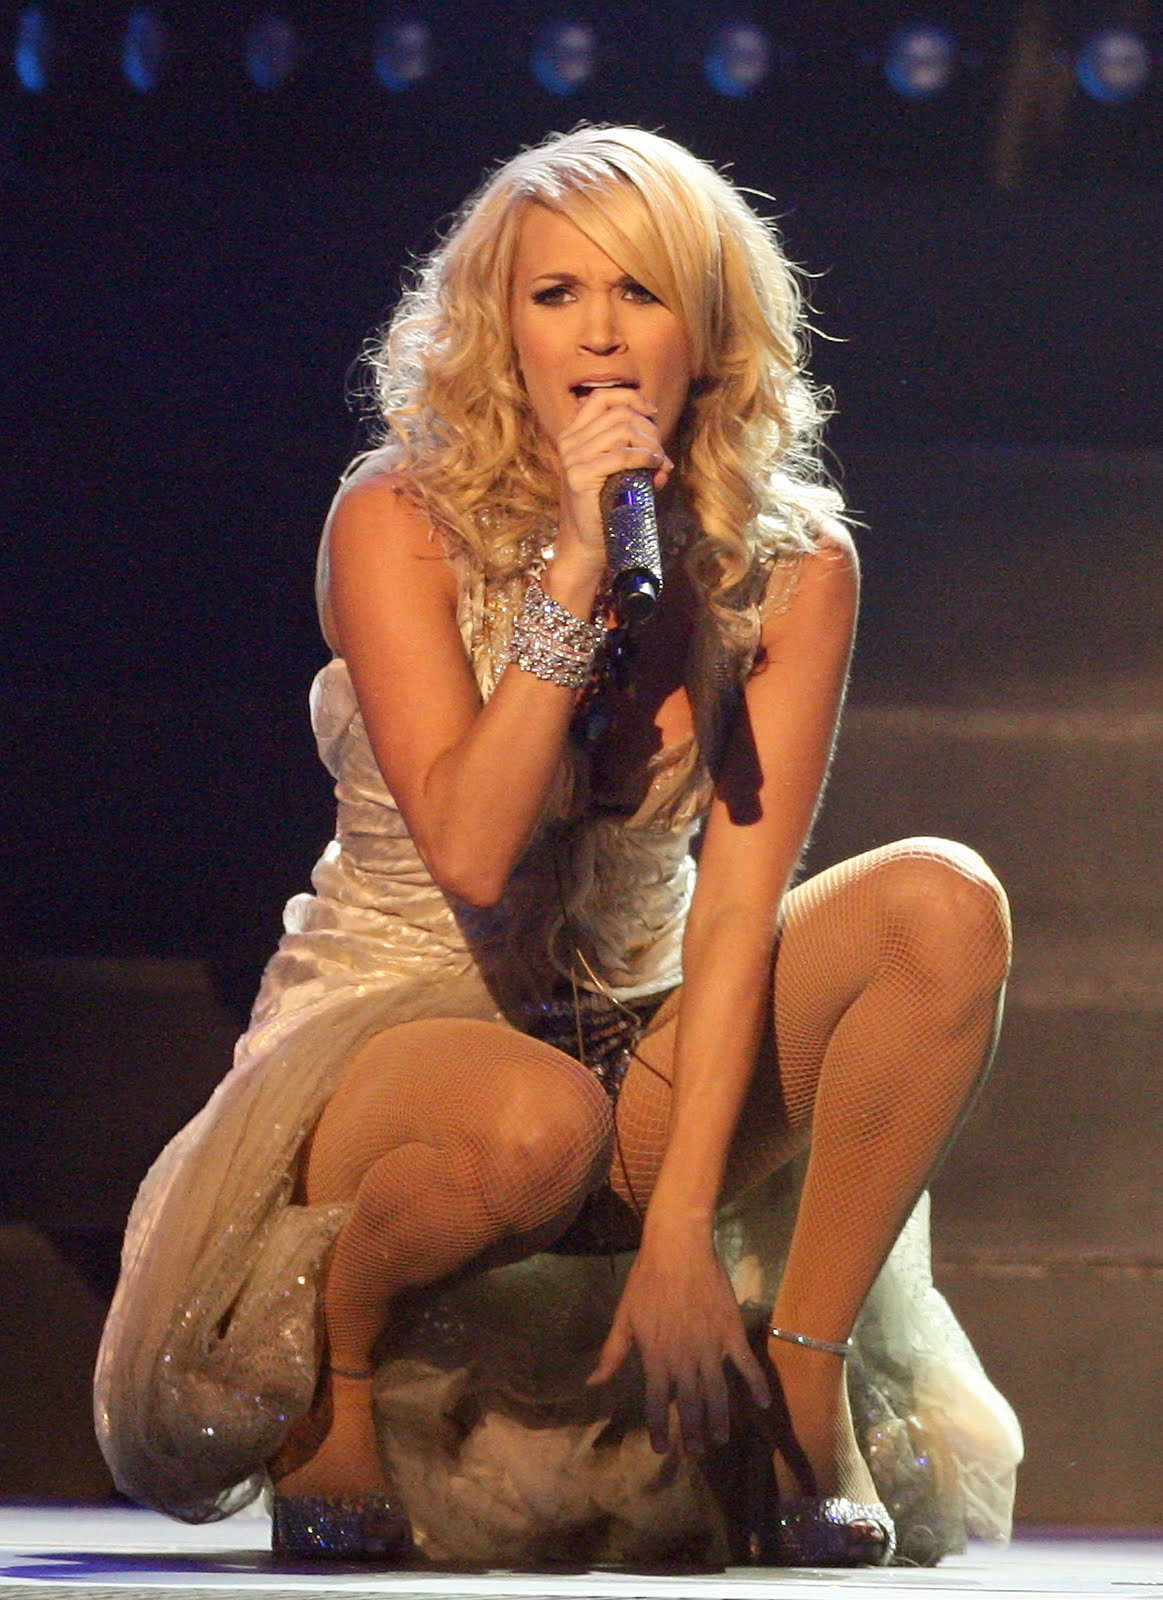 Confirm. happens. Carrie underwood 2018 pussy spread curious